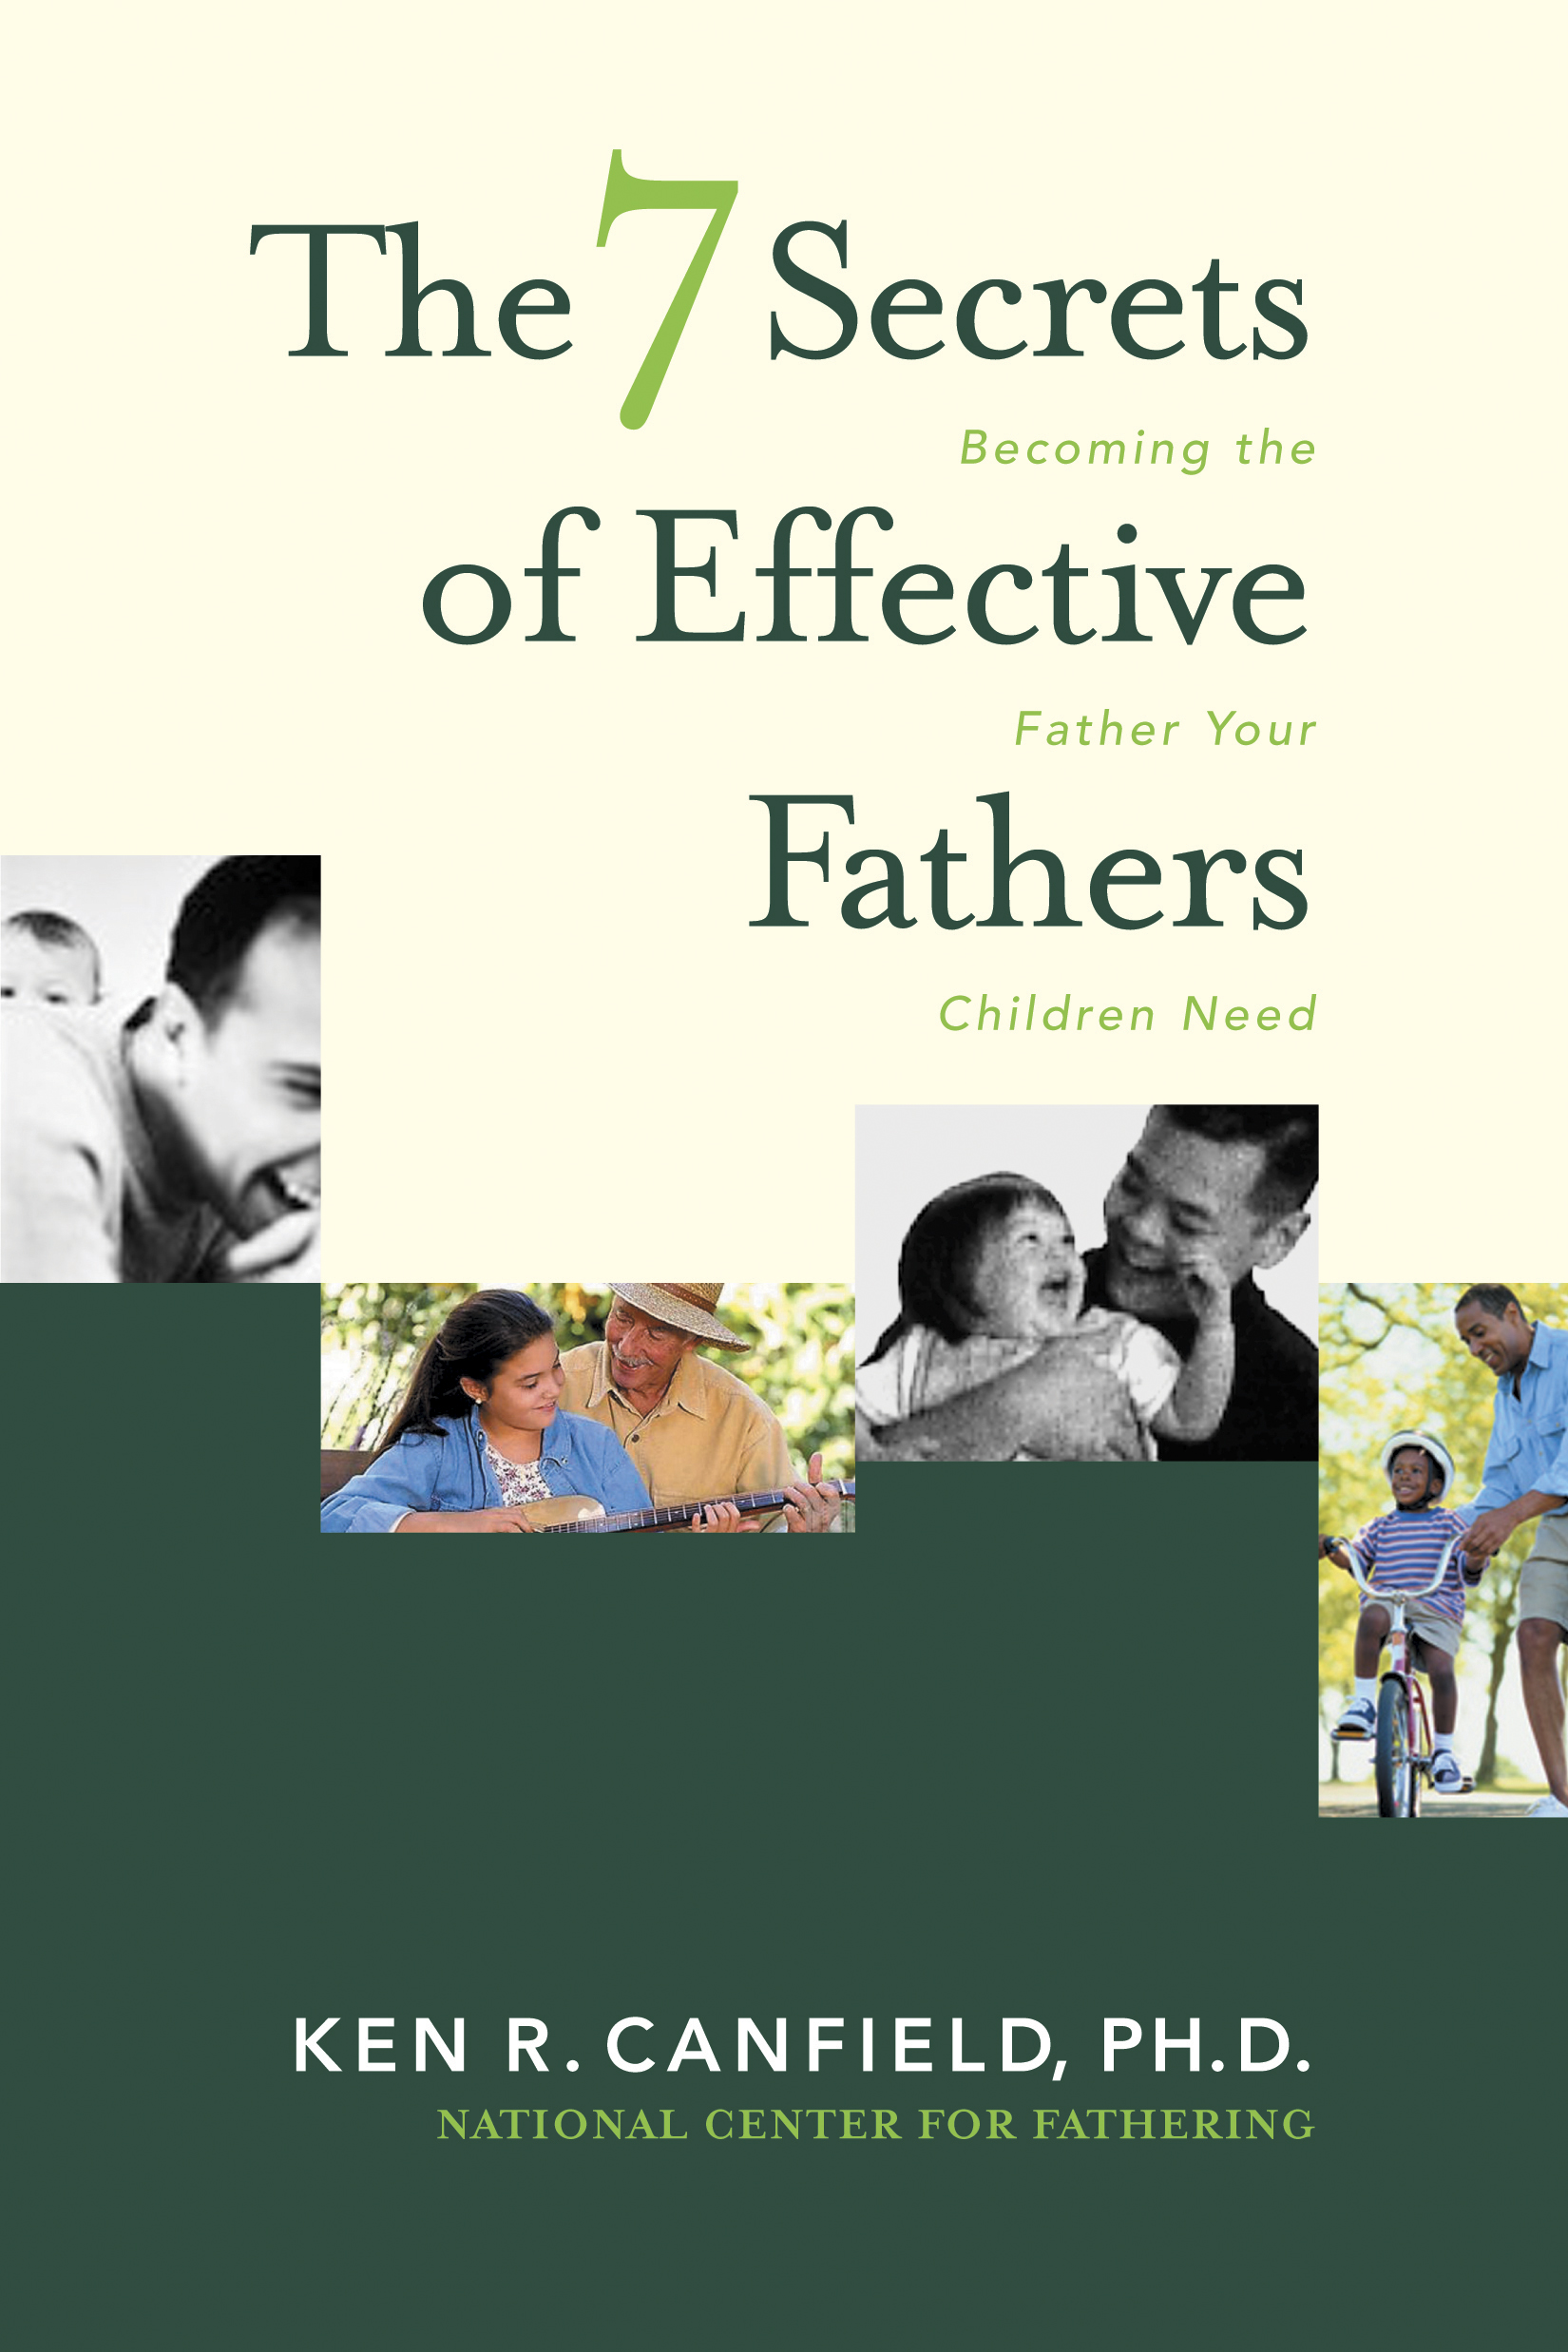 7 Secrets of Effective Fathers